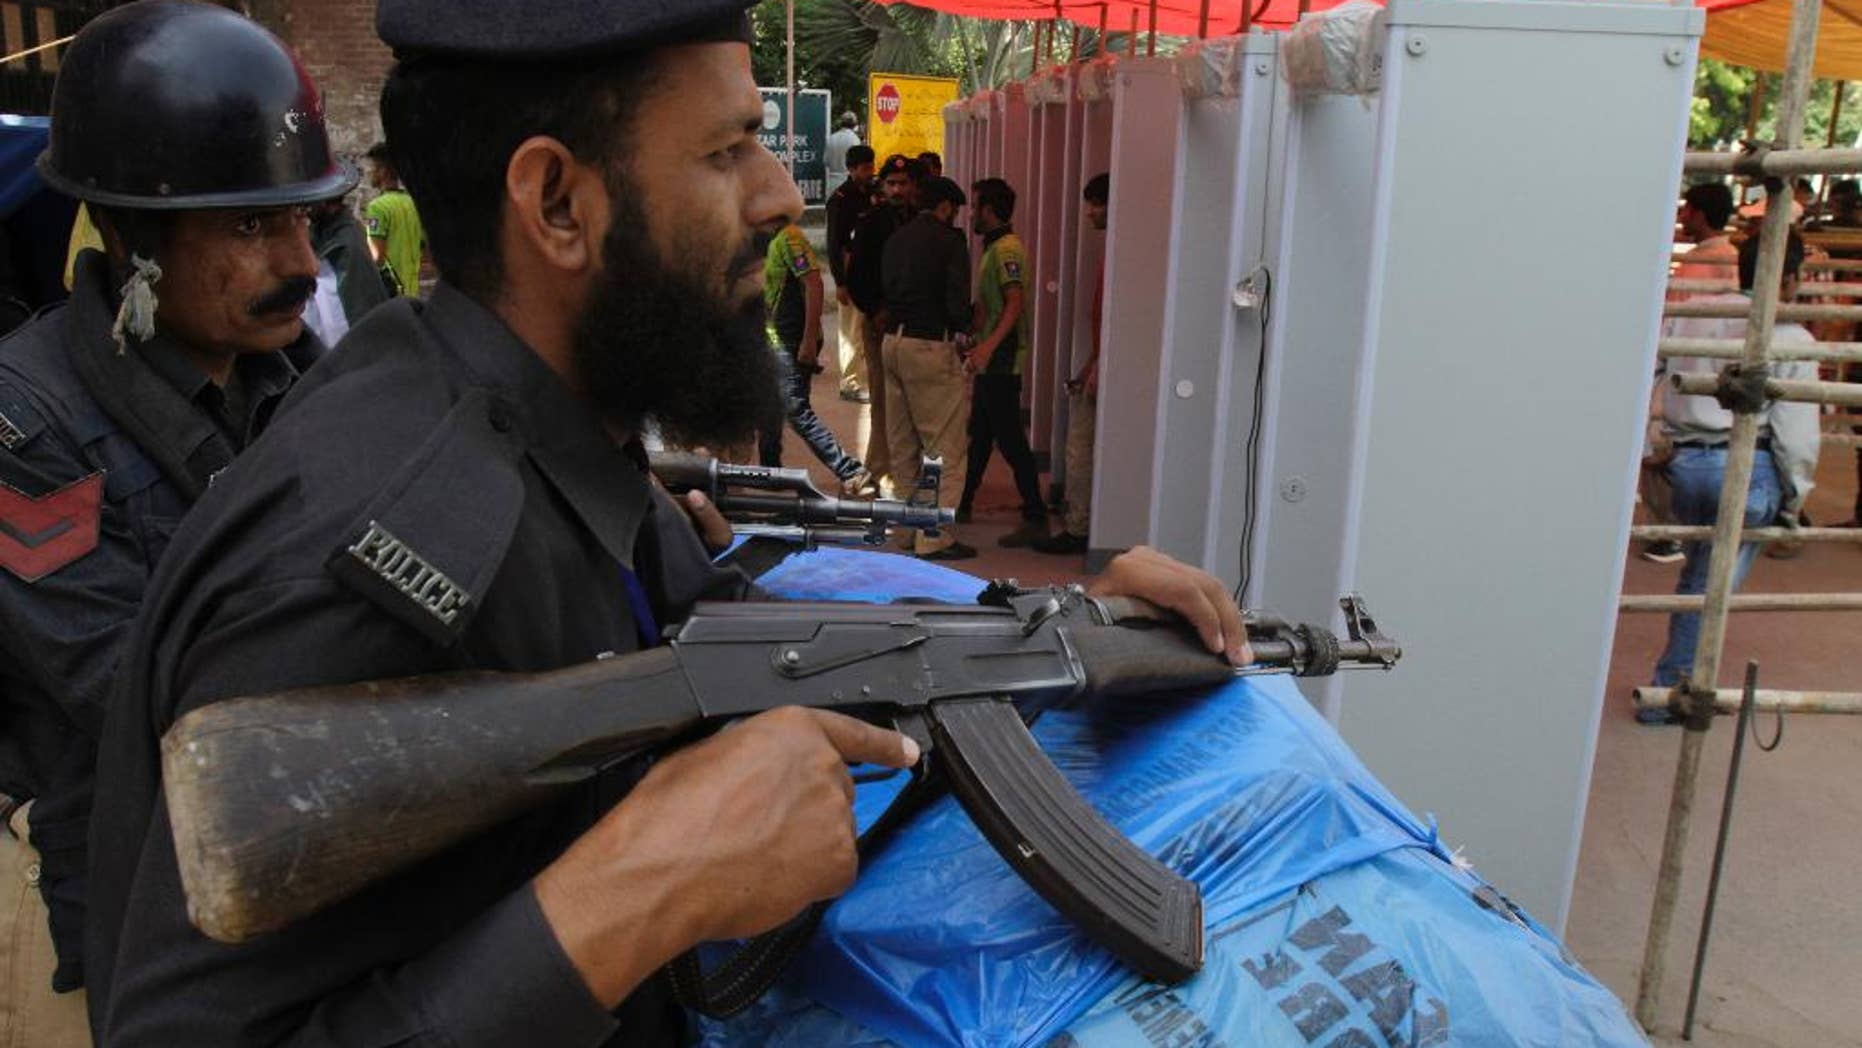 Pakistani police officers stand alert at an entrance of the Gaddafi stadium during the  second one-day international match between Pakistan and Zimbabwe Friday, May 29, 2015. Zimbabwe is the first test playing nation to visit Pakistan in more than six years since gunmen attacked a bus of the Sri Lanka team in Lahore in 2009. (AP Photo/K.M. Chaudary)